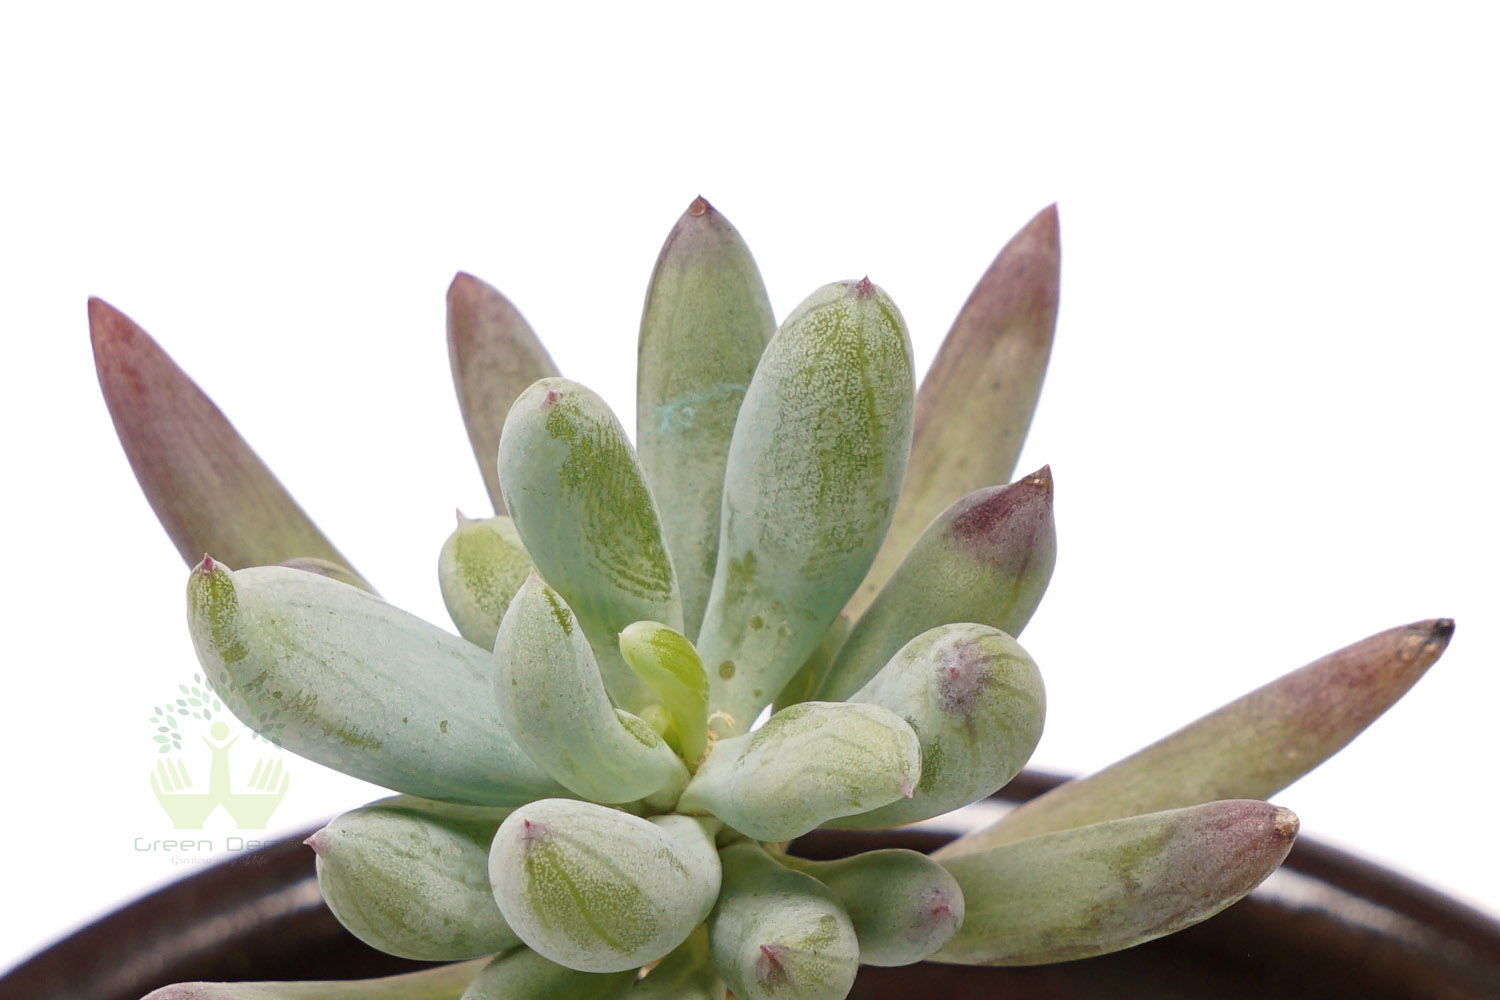 Buy Sedum Adolphi Plants , White Pots and seeds in Delhi NCR by the best online nursery shop Greendecor.